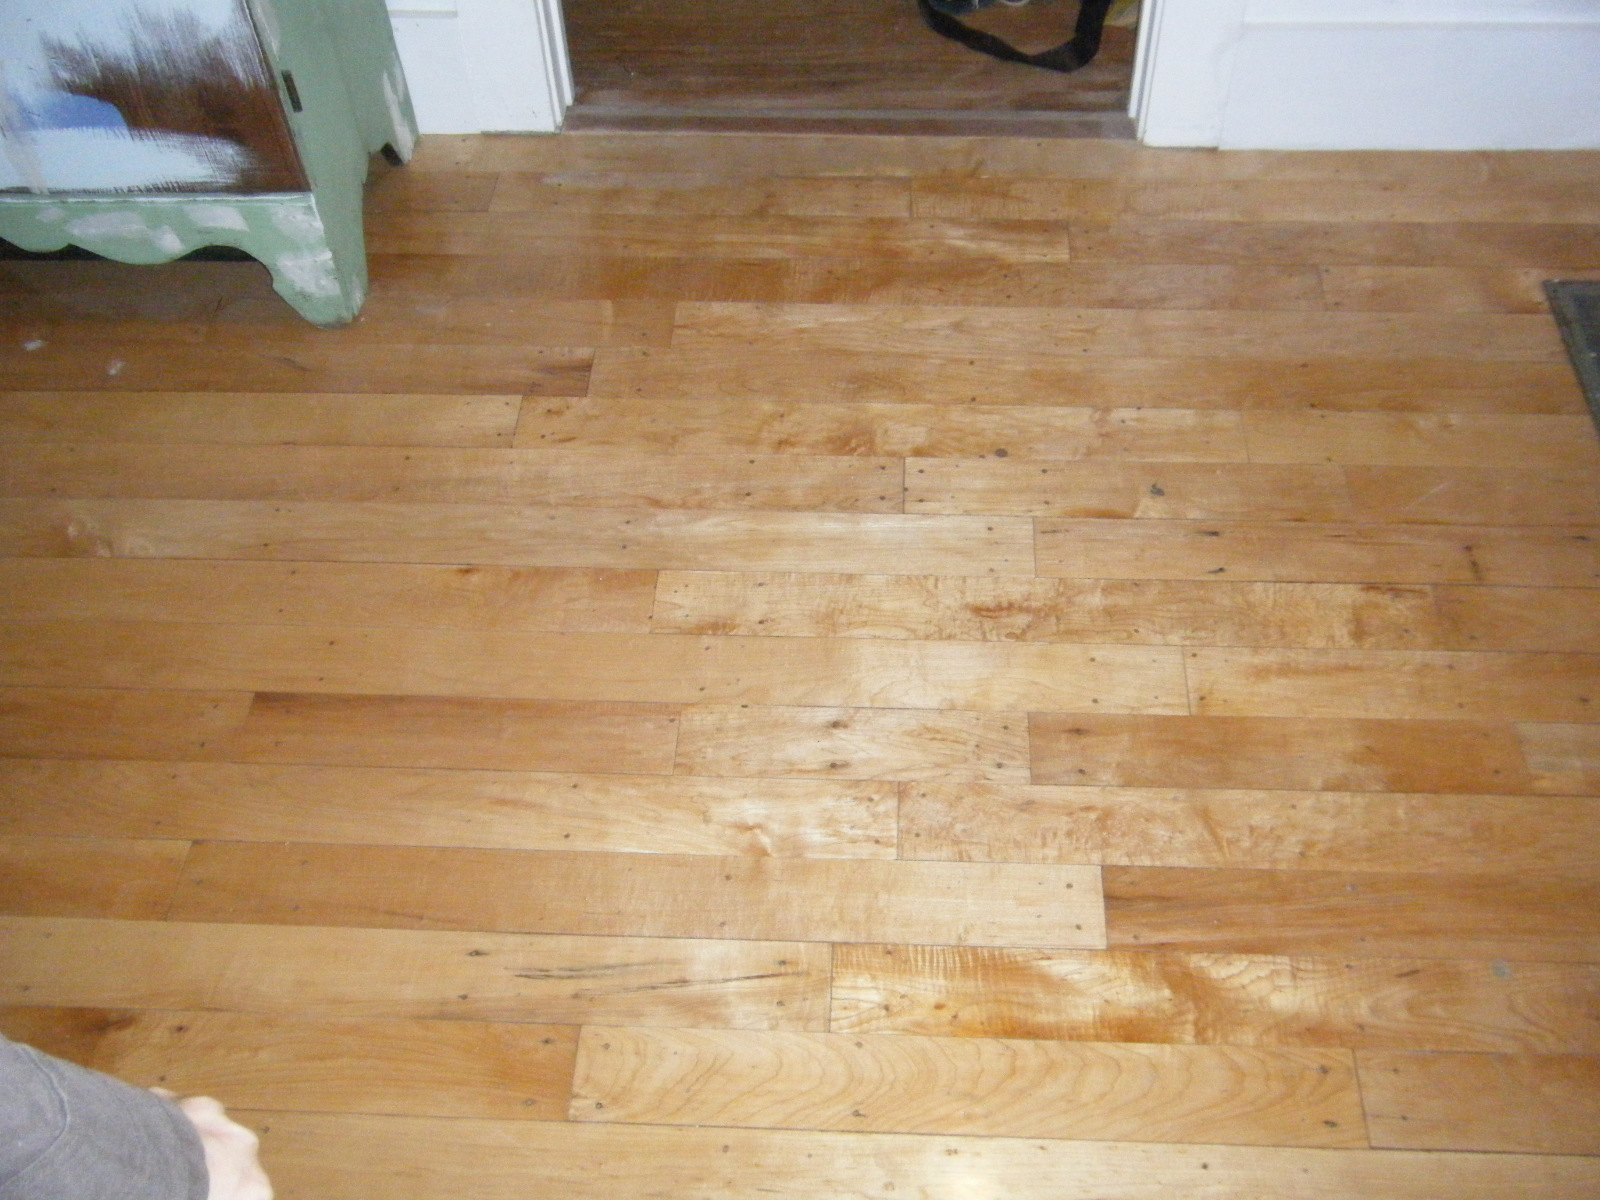 ... Source for Antique/Reclaimed and New Hardwood Flooring and Lumber